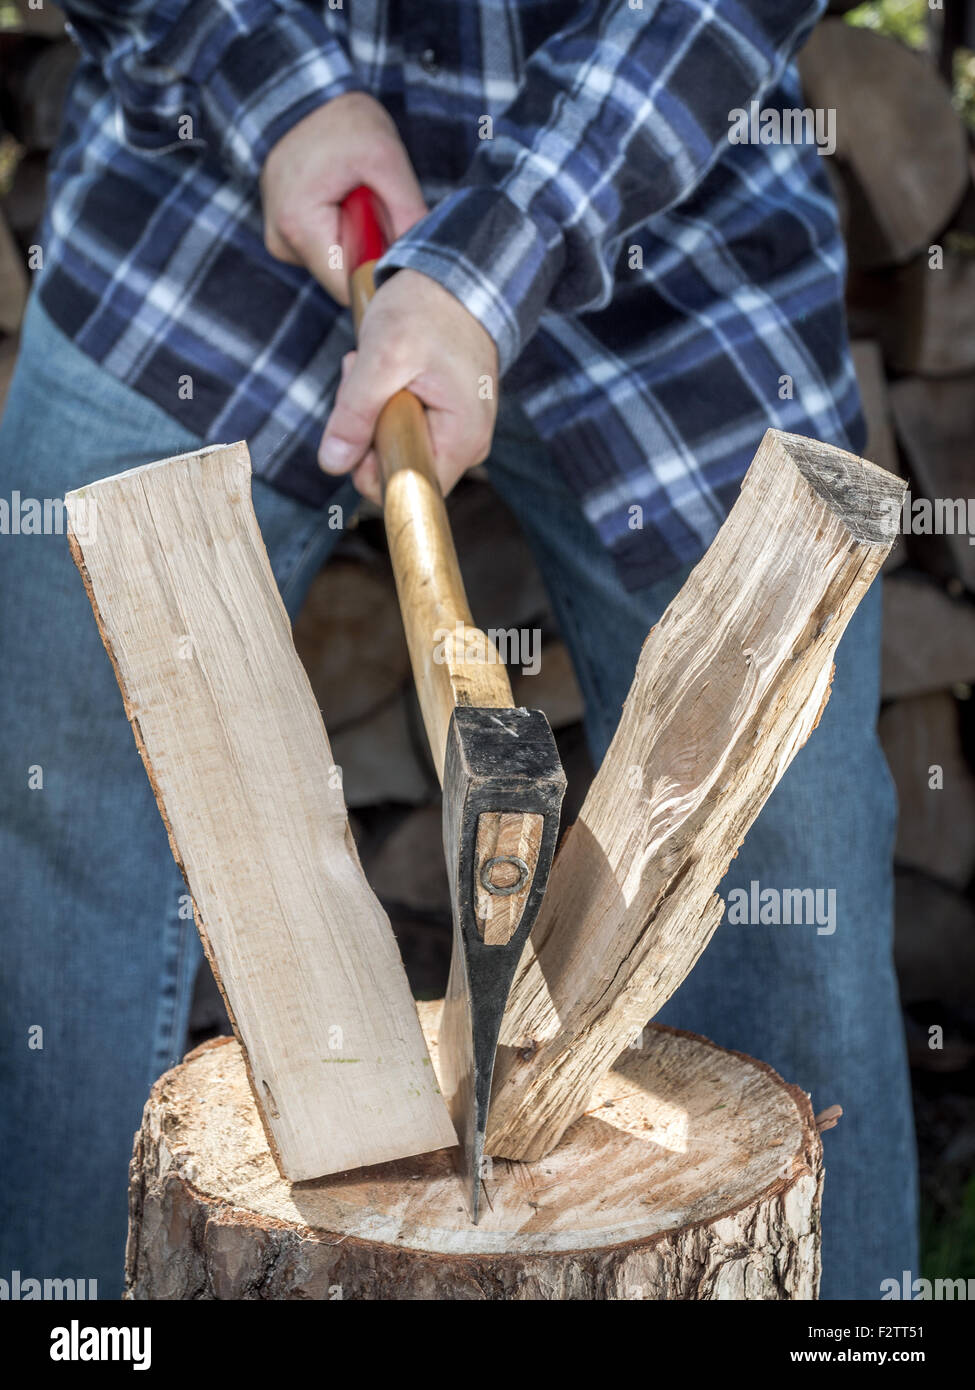 Man splitting log on chopping block with axe - Stock Image